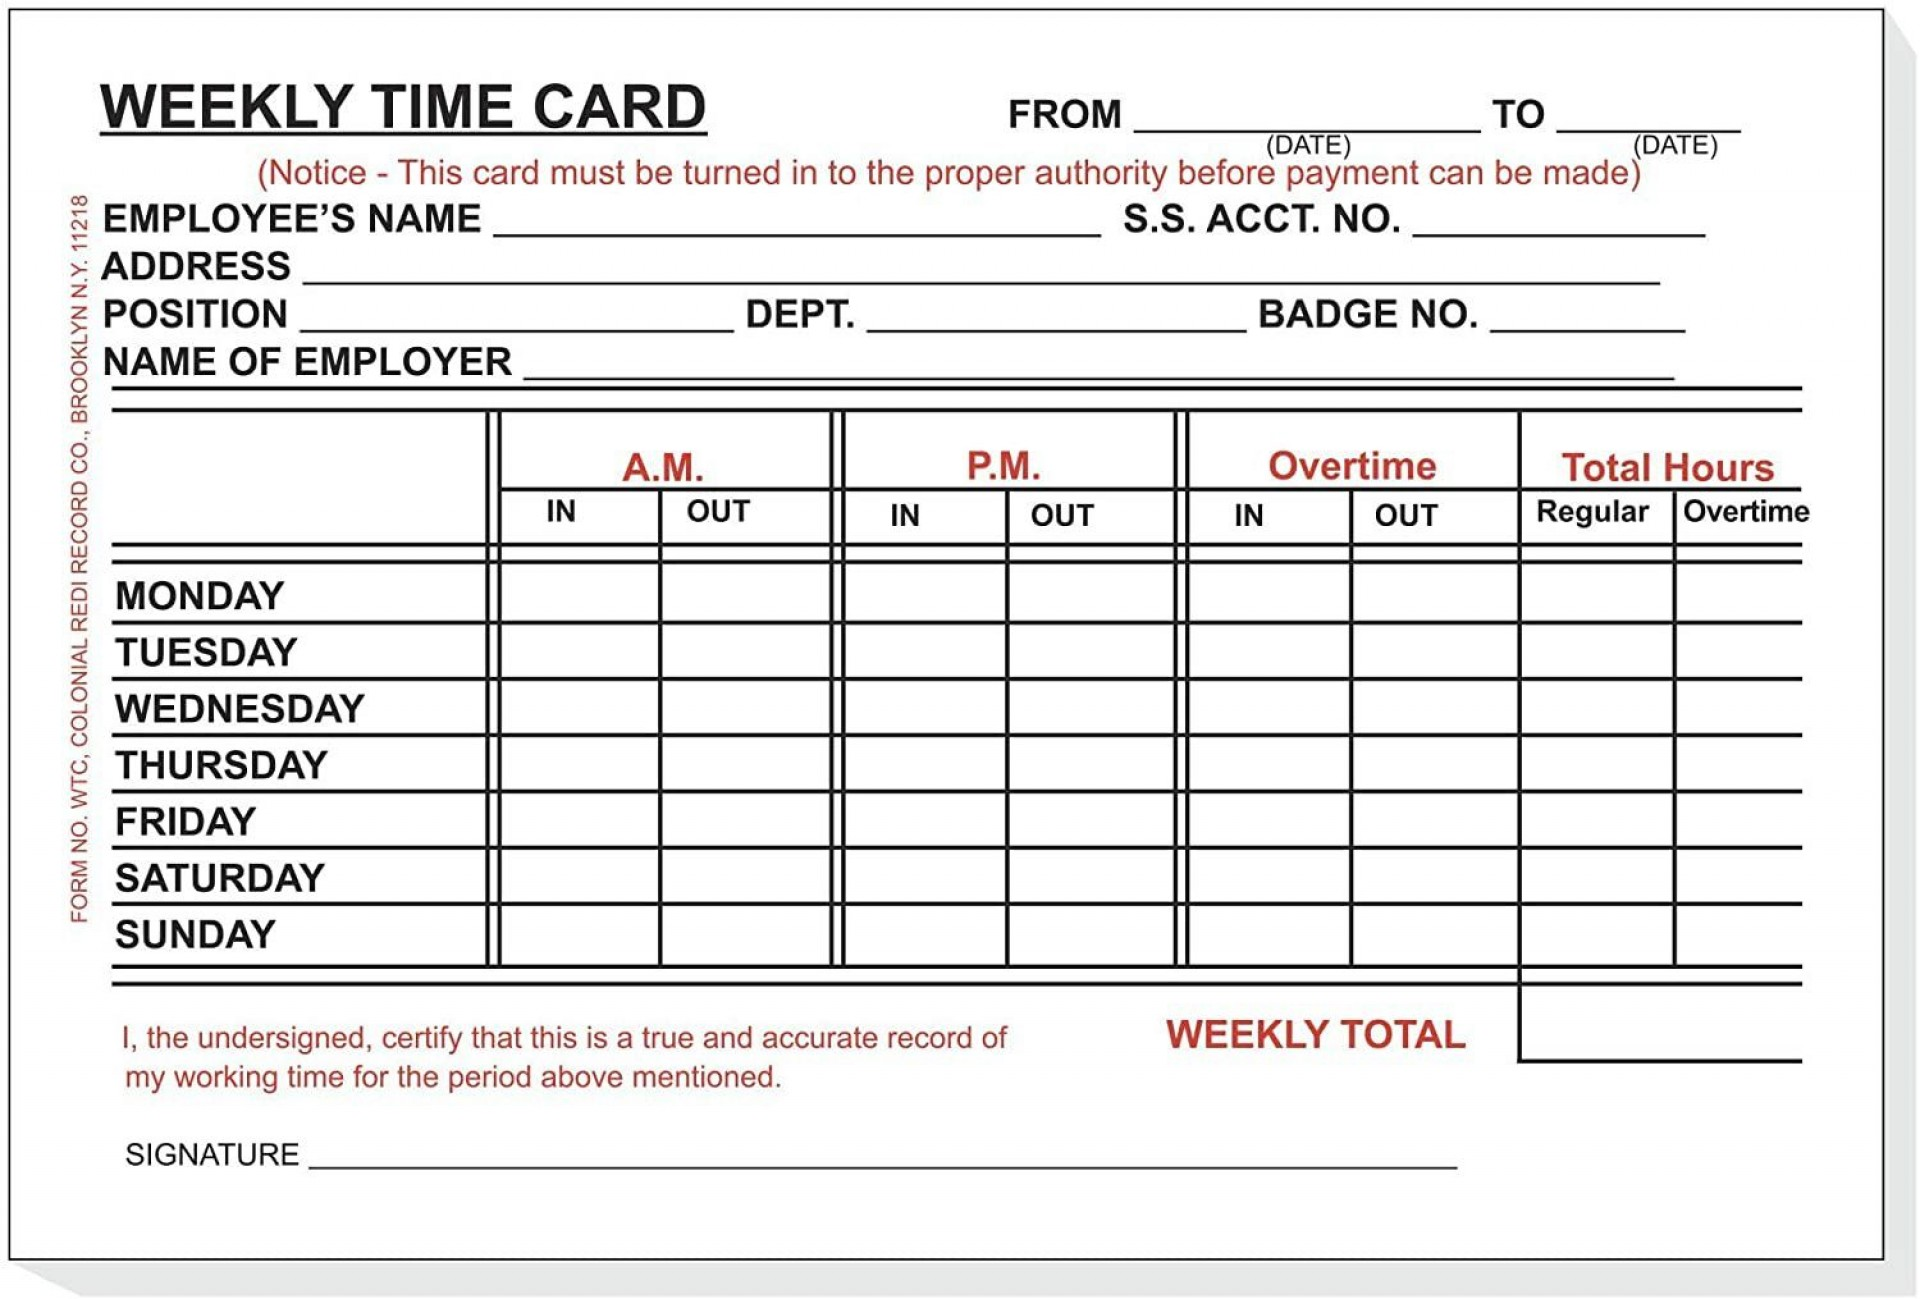 002 Frightening Employee Time Card Form High Def  Timesheet Template Excel Sheet Free1920